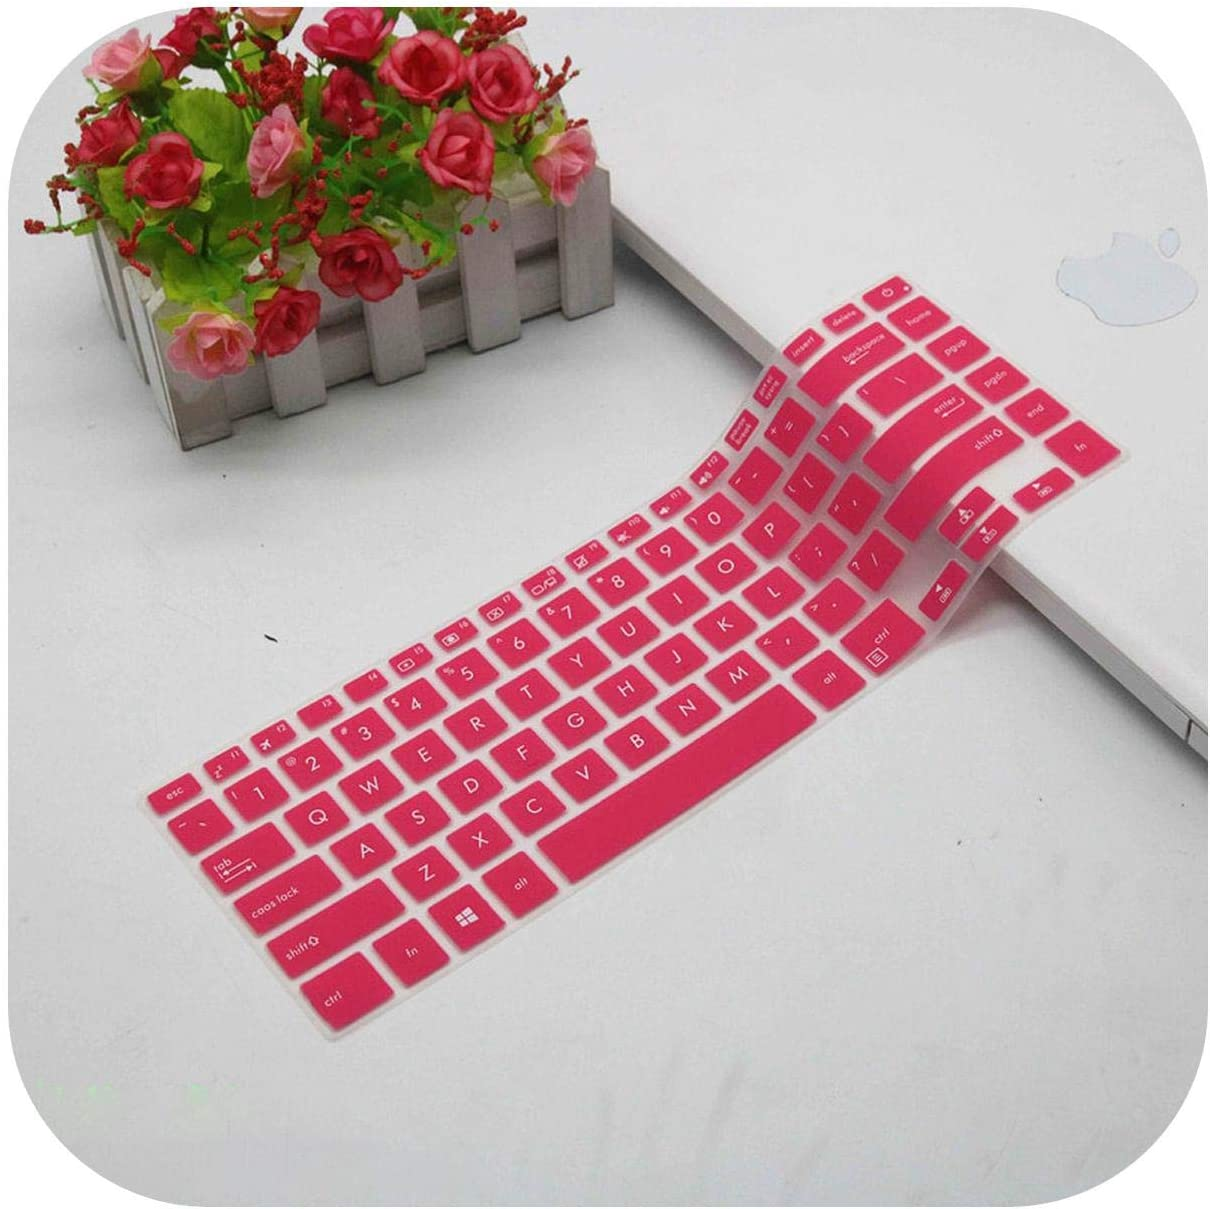 for Asus Zenbook Pro 15 Ux580Ge Ux580Gd Ux580 15.6 Inch Silicone Keyboard Protector Skin Cover Guard-Clear